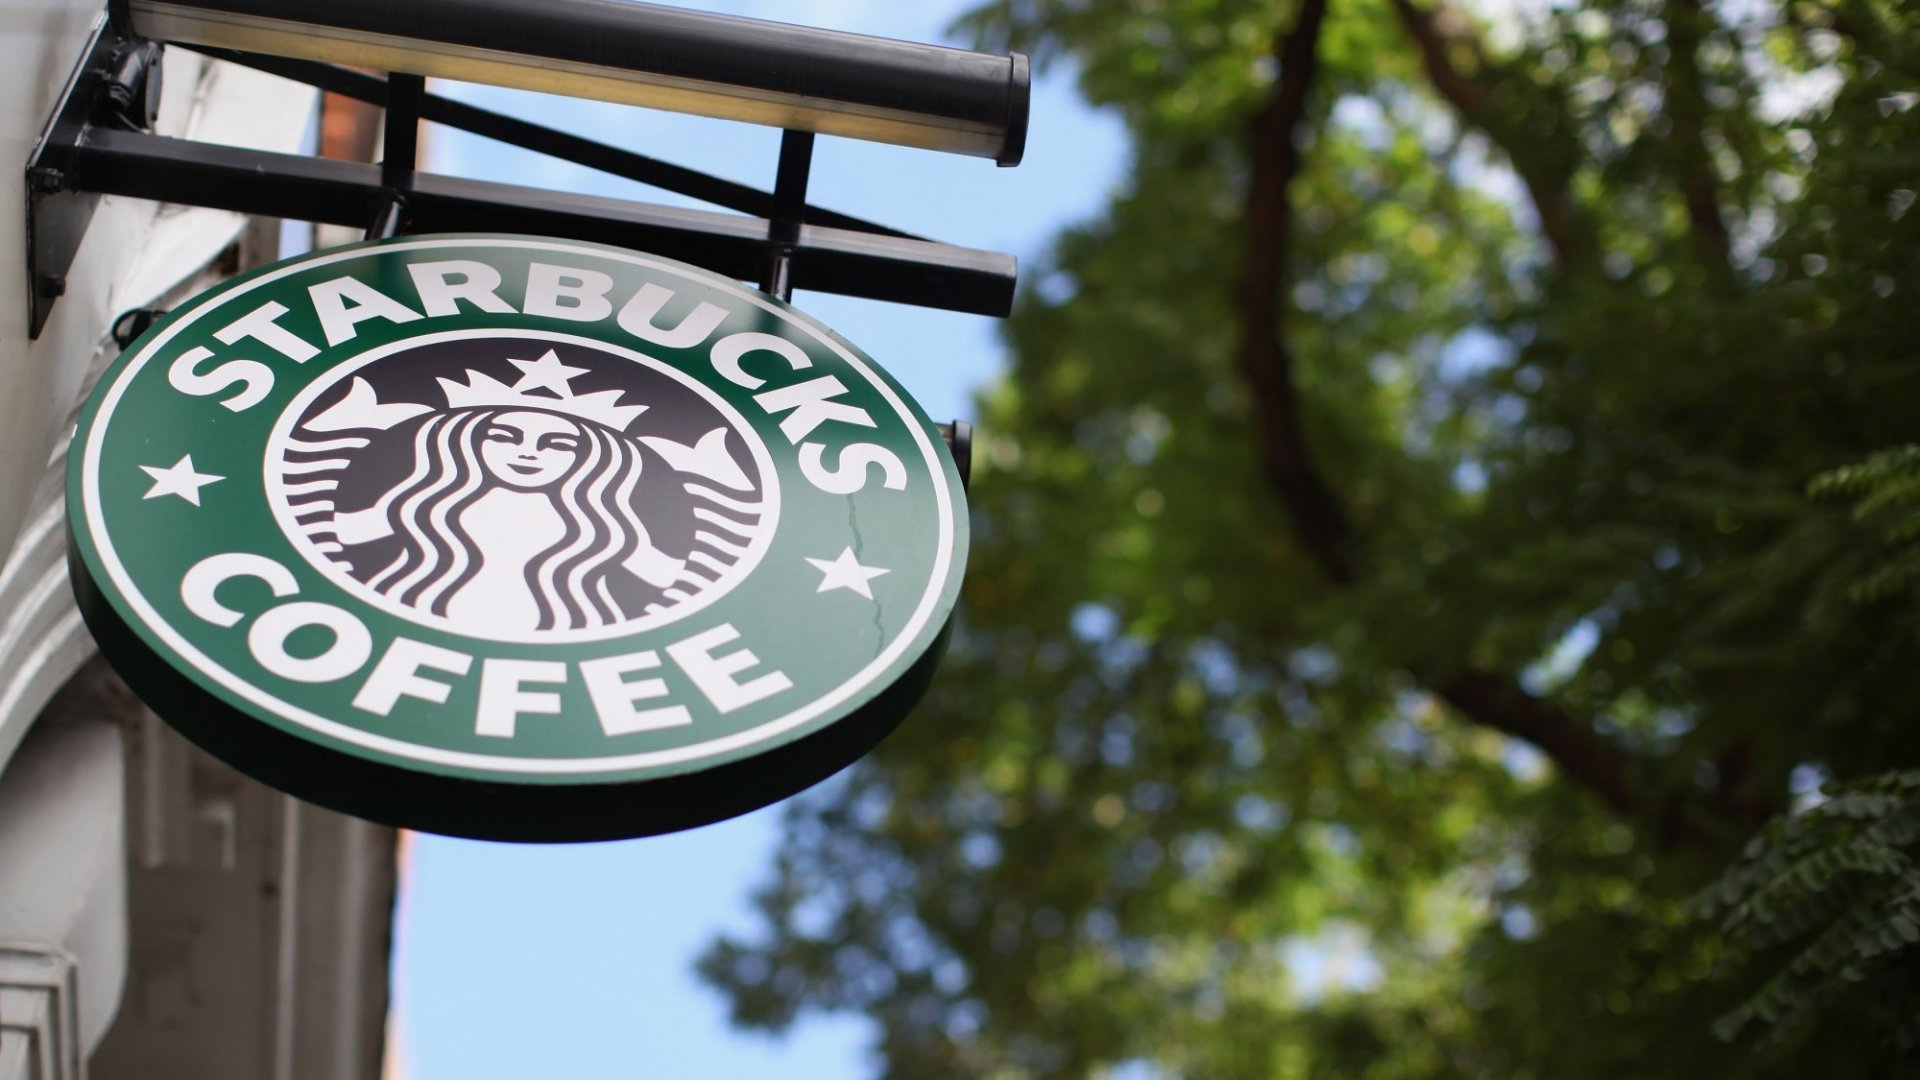 Starbucks Just Sent an Amazing Message to the Deaf Community